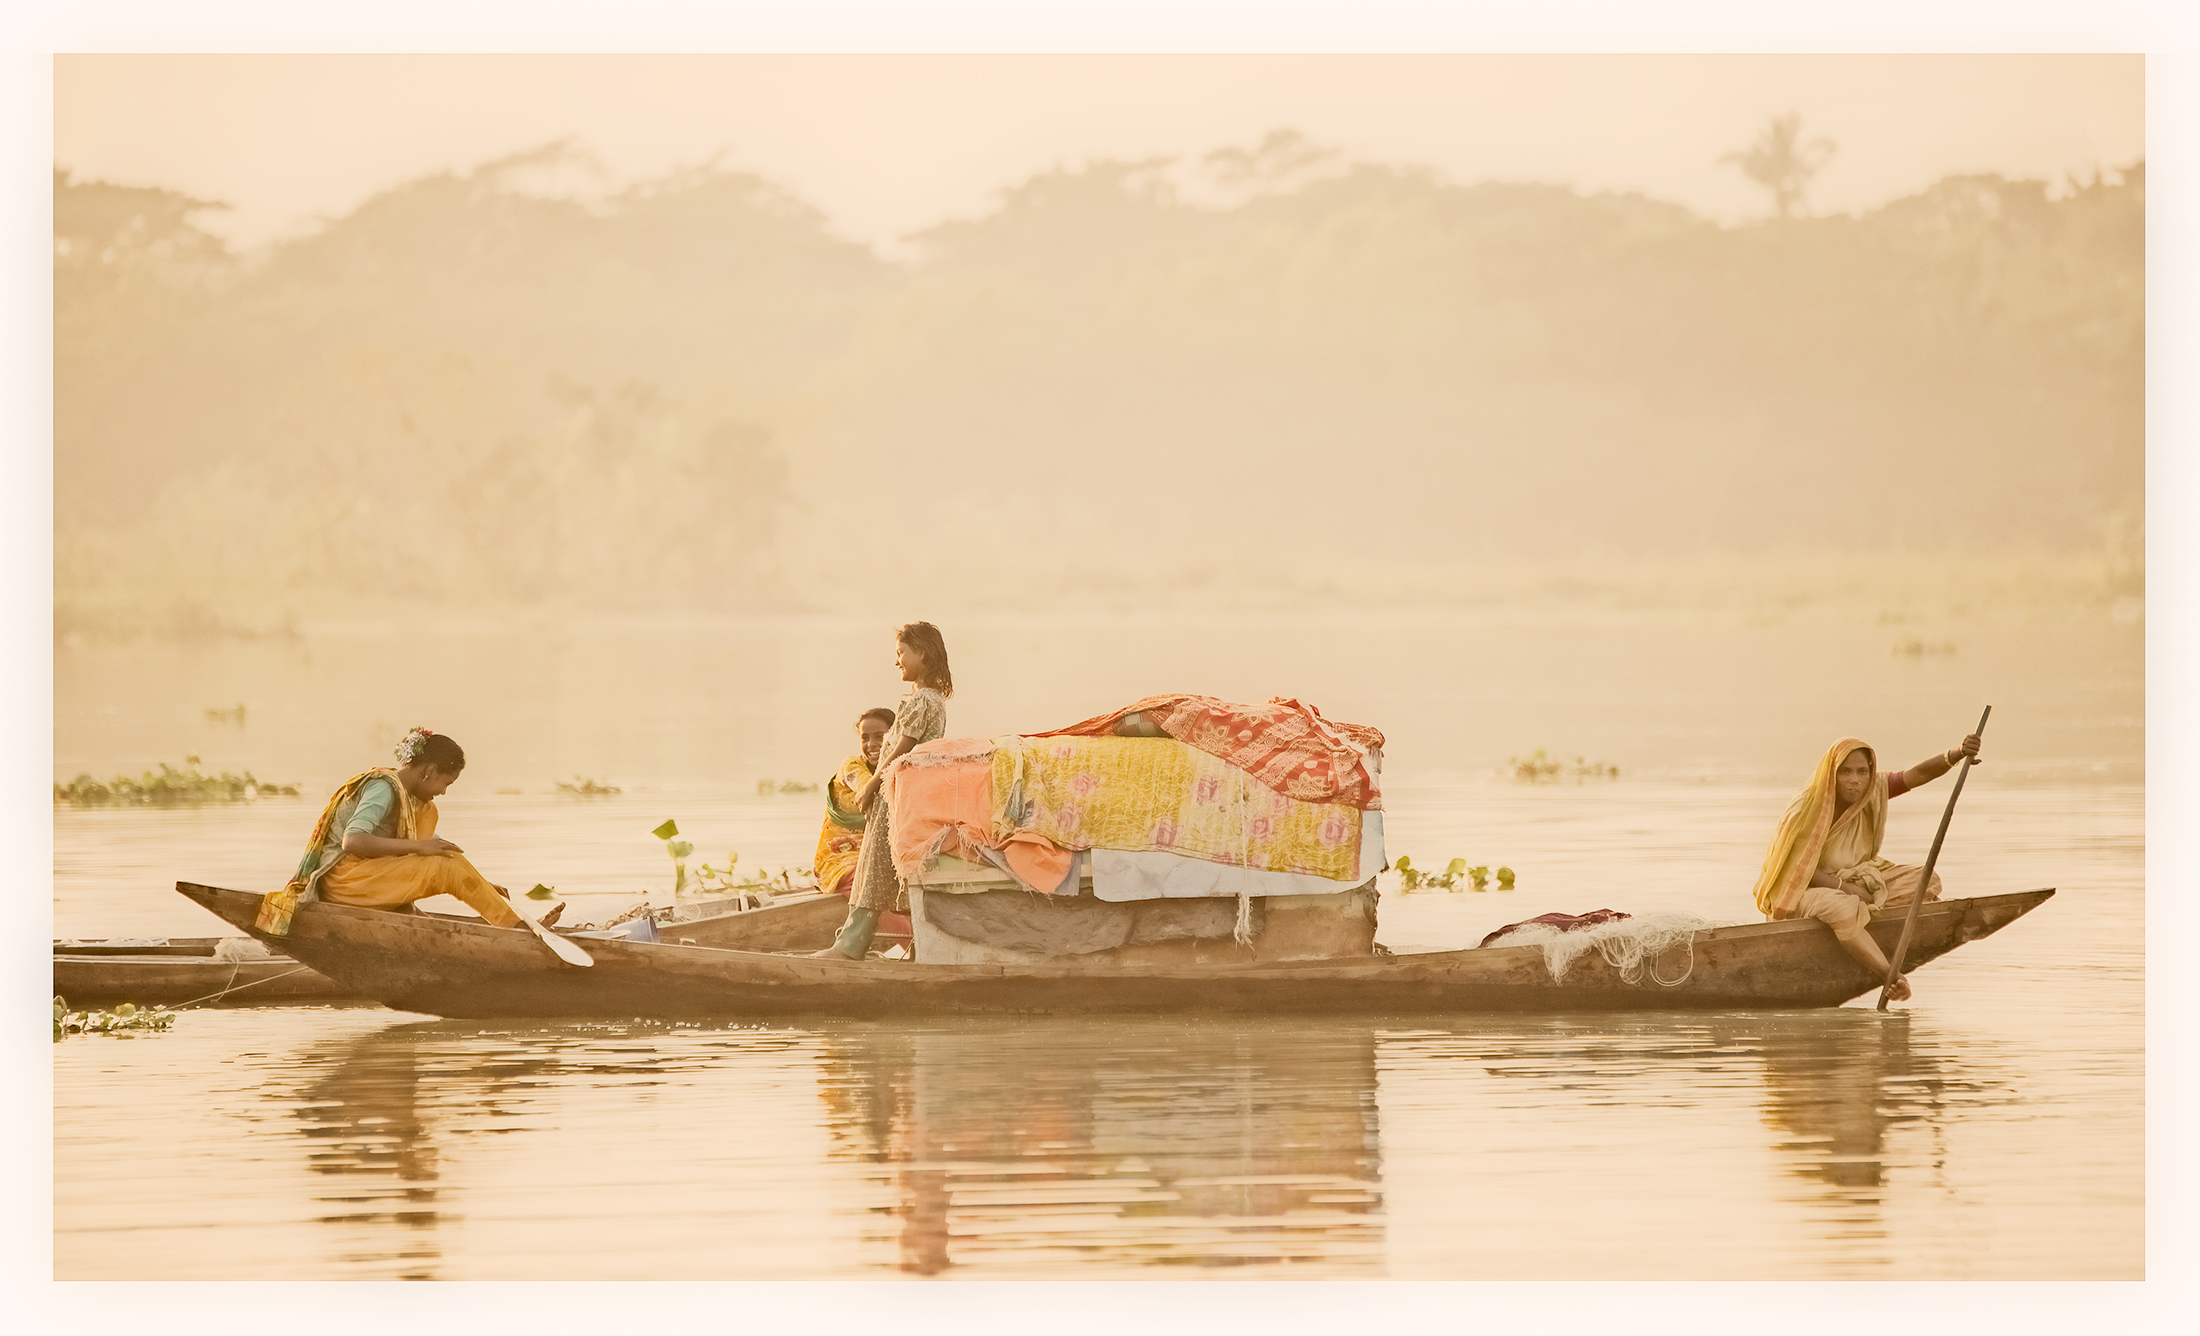 This always feels like summer…end of the day, women and boats, Bangladesh.